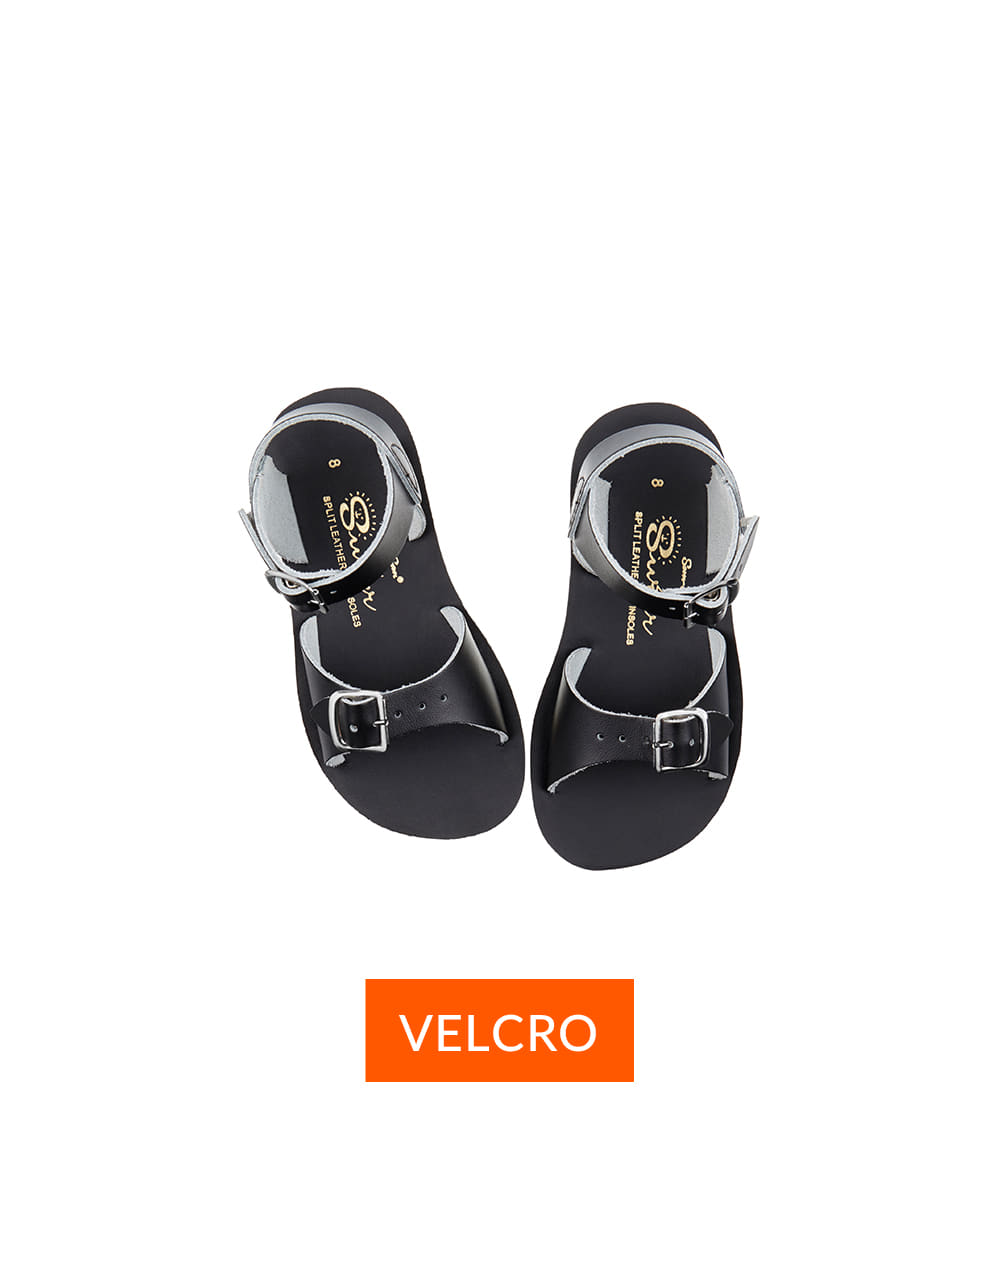 SALT-WATER SANDAL  CHILD VELCRO SURFER  Black